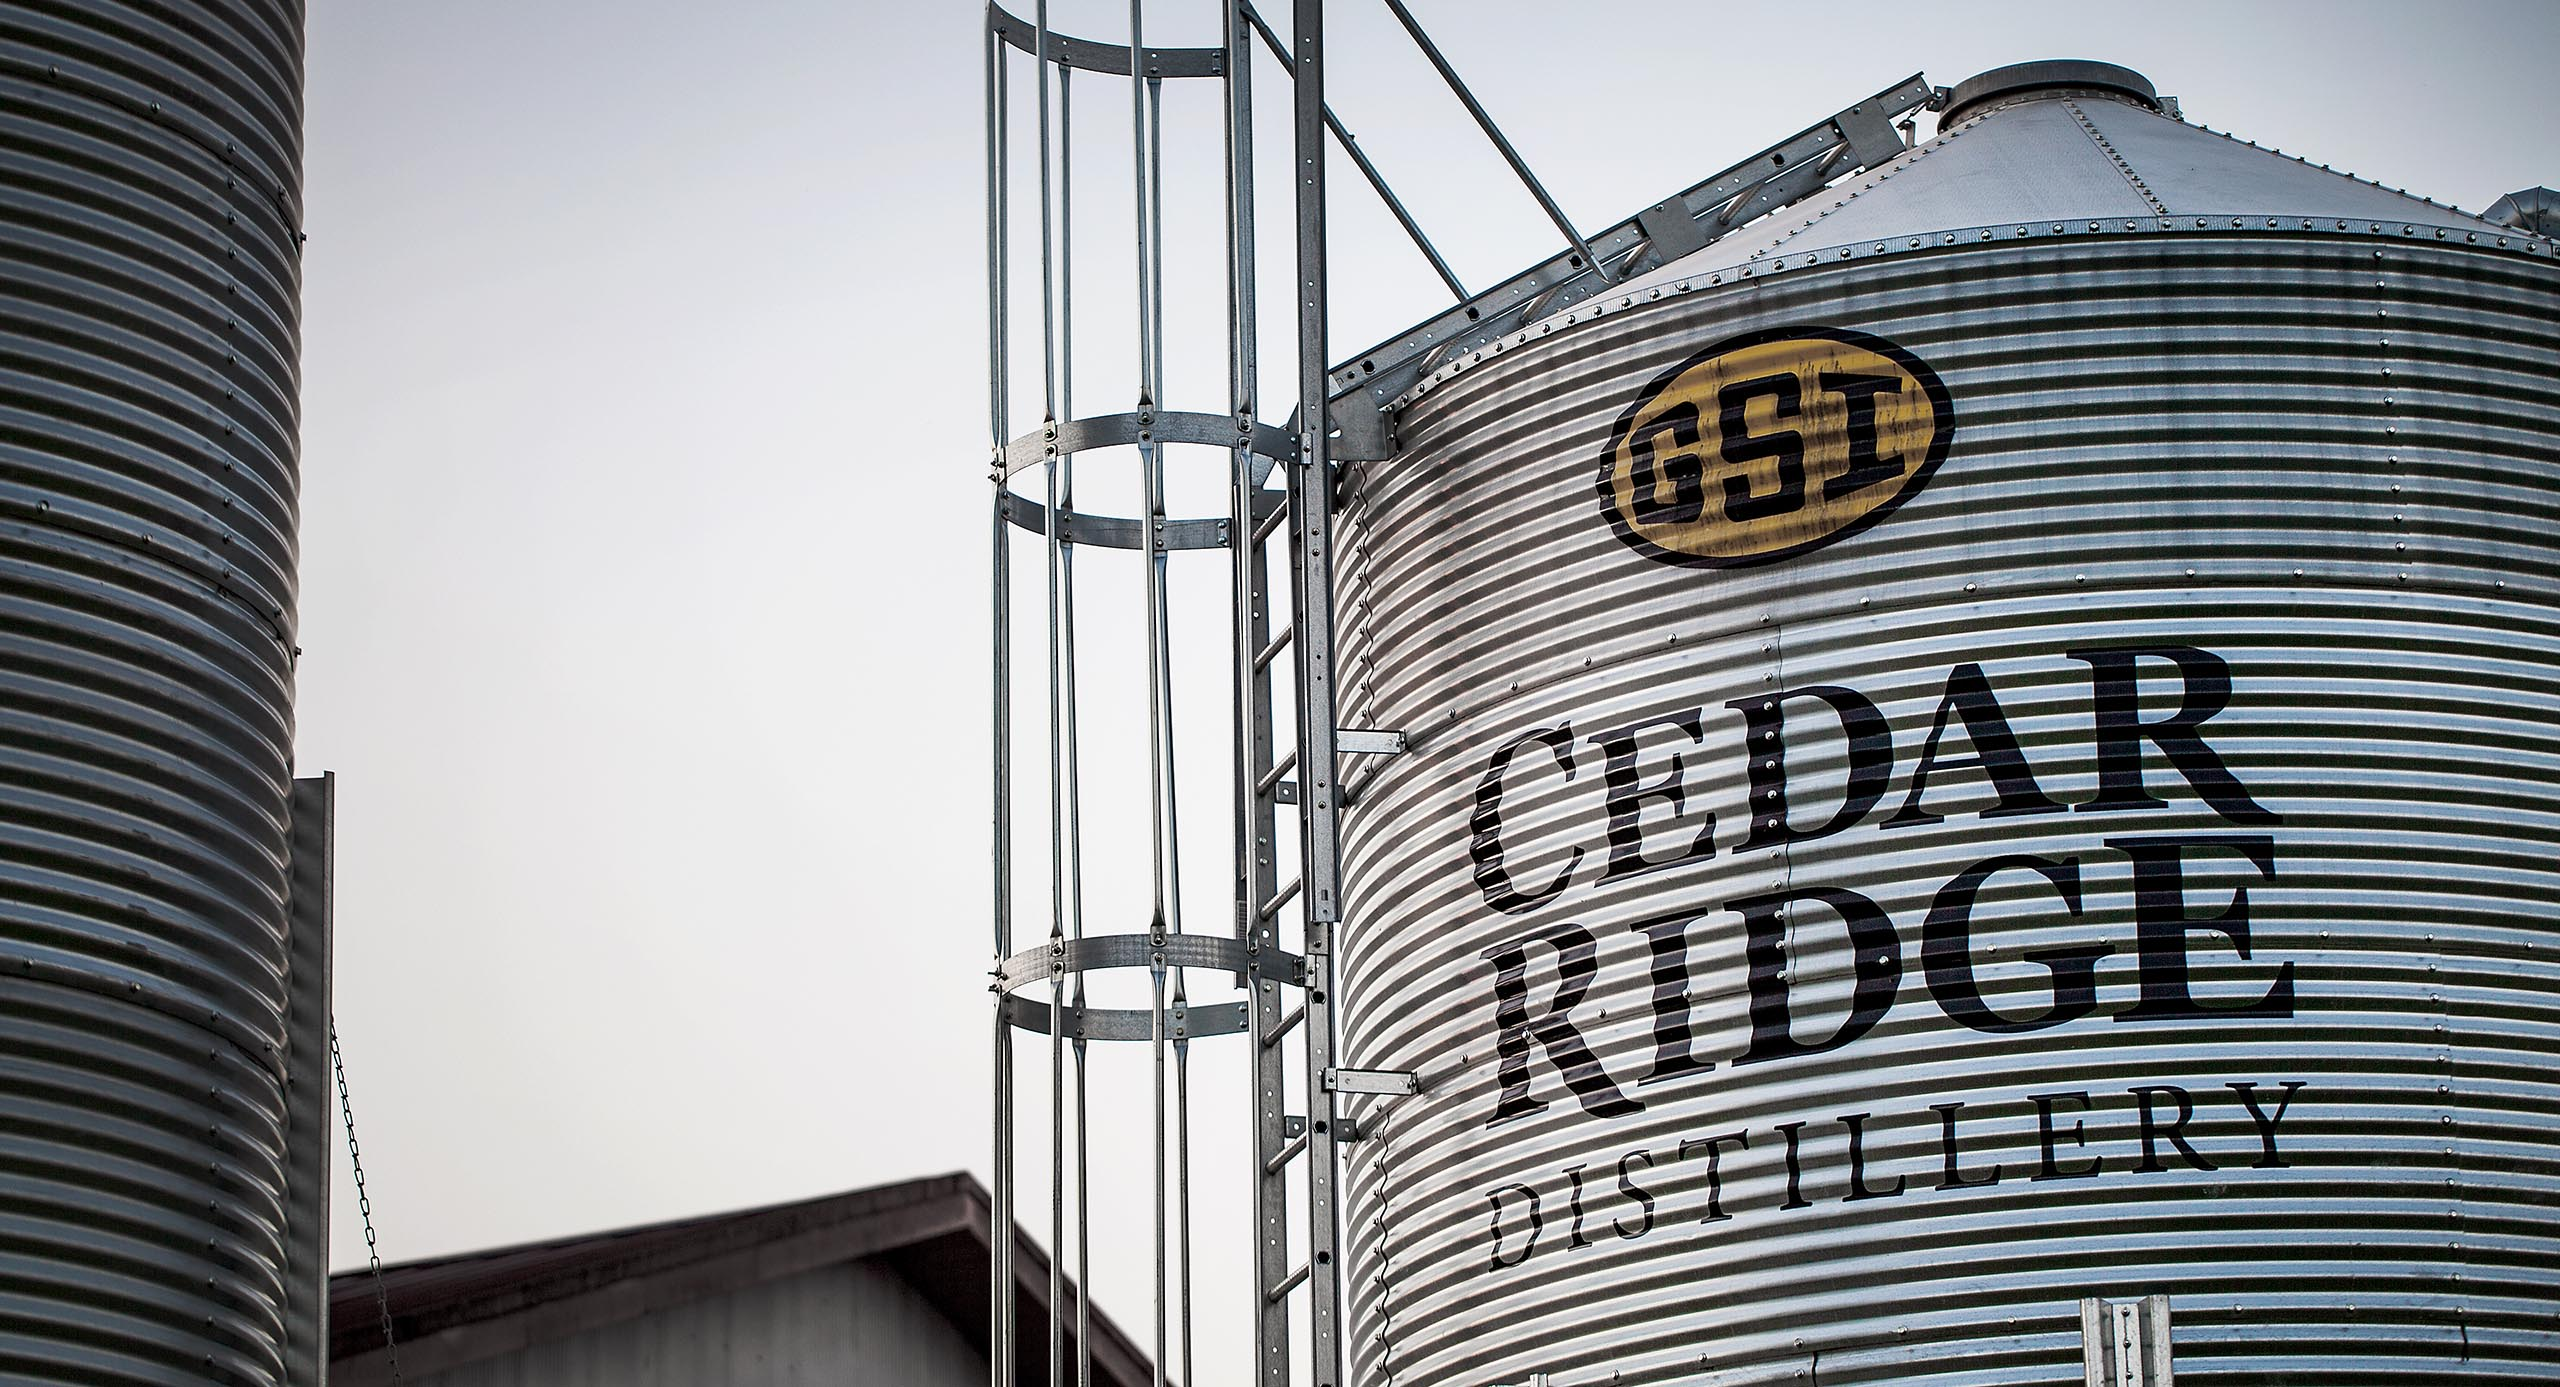 Cedar Ridge Distillery grain bins